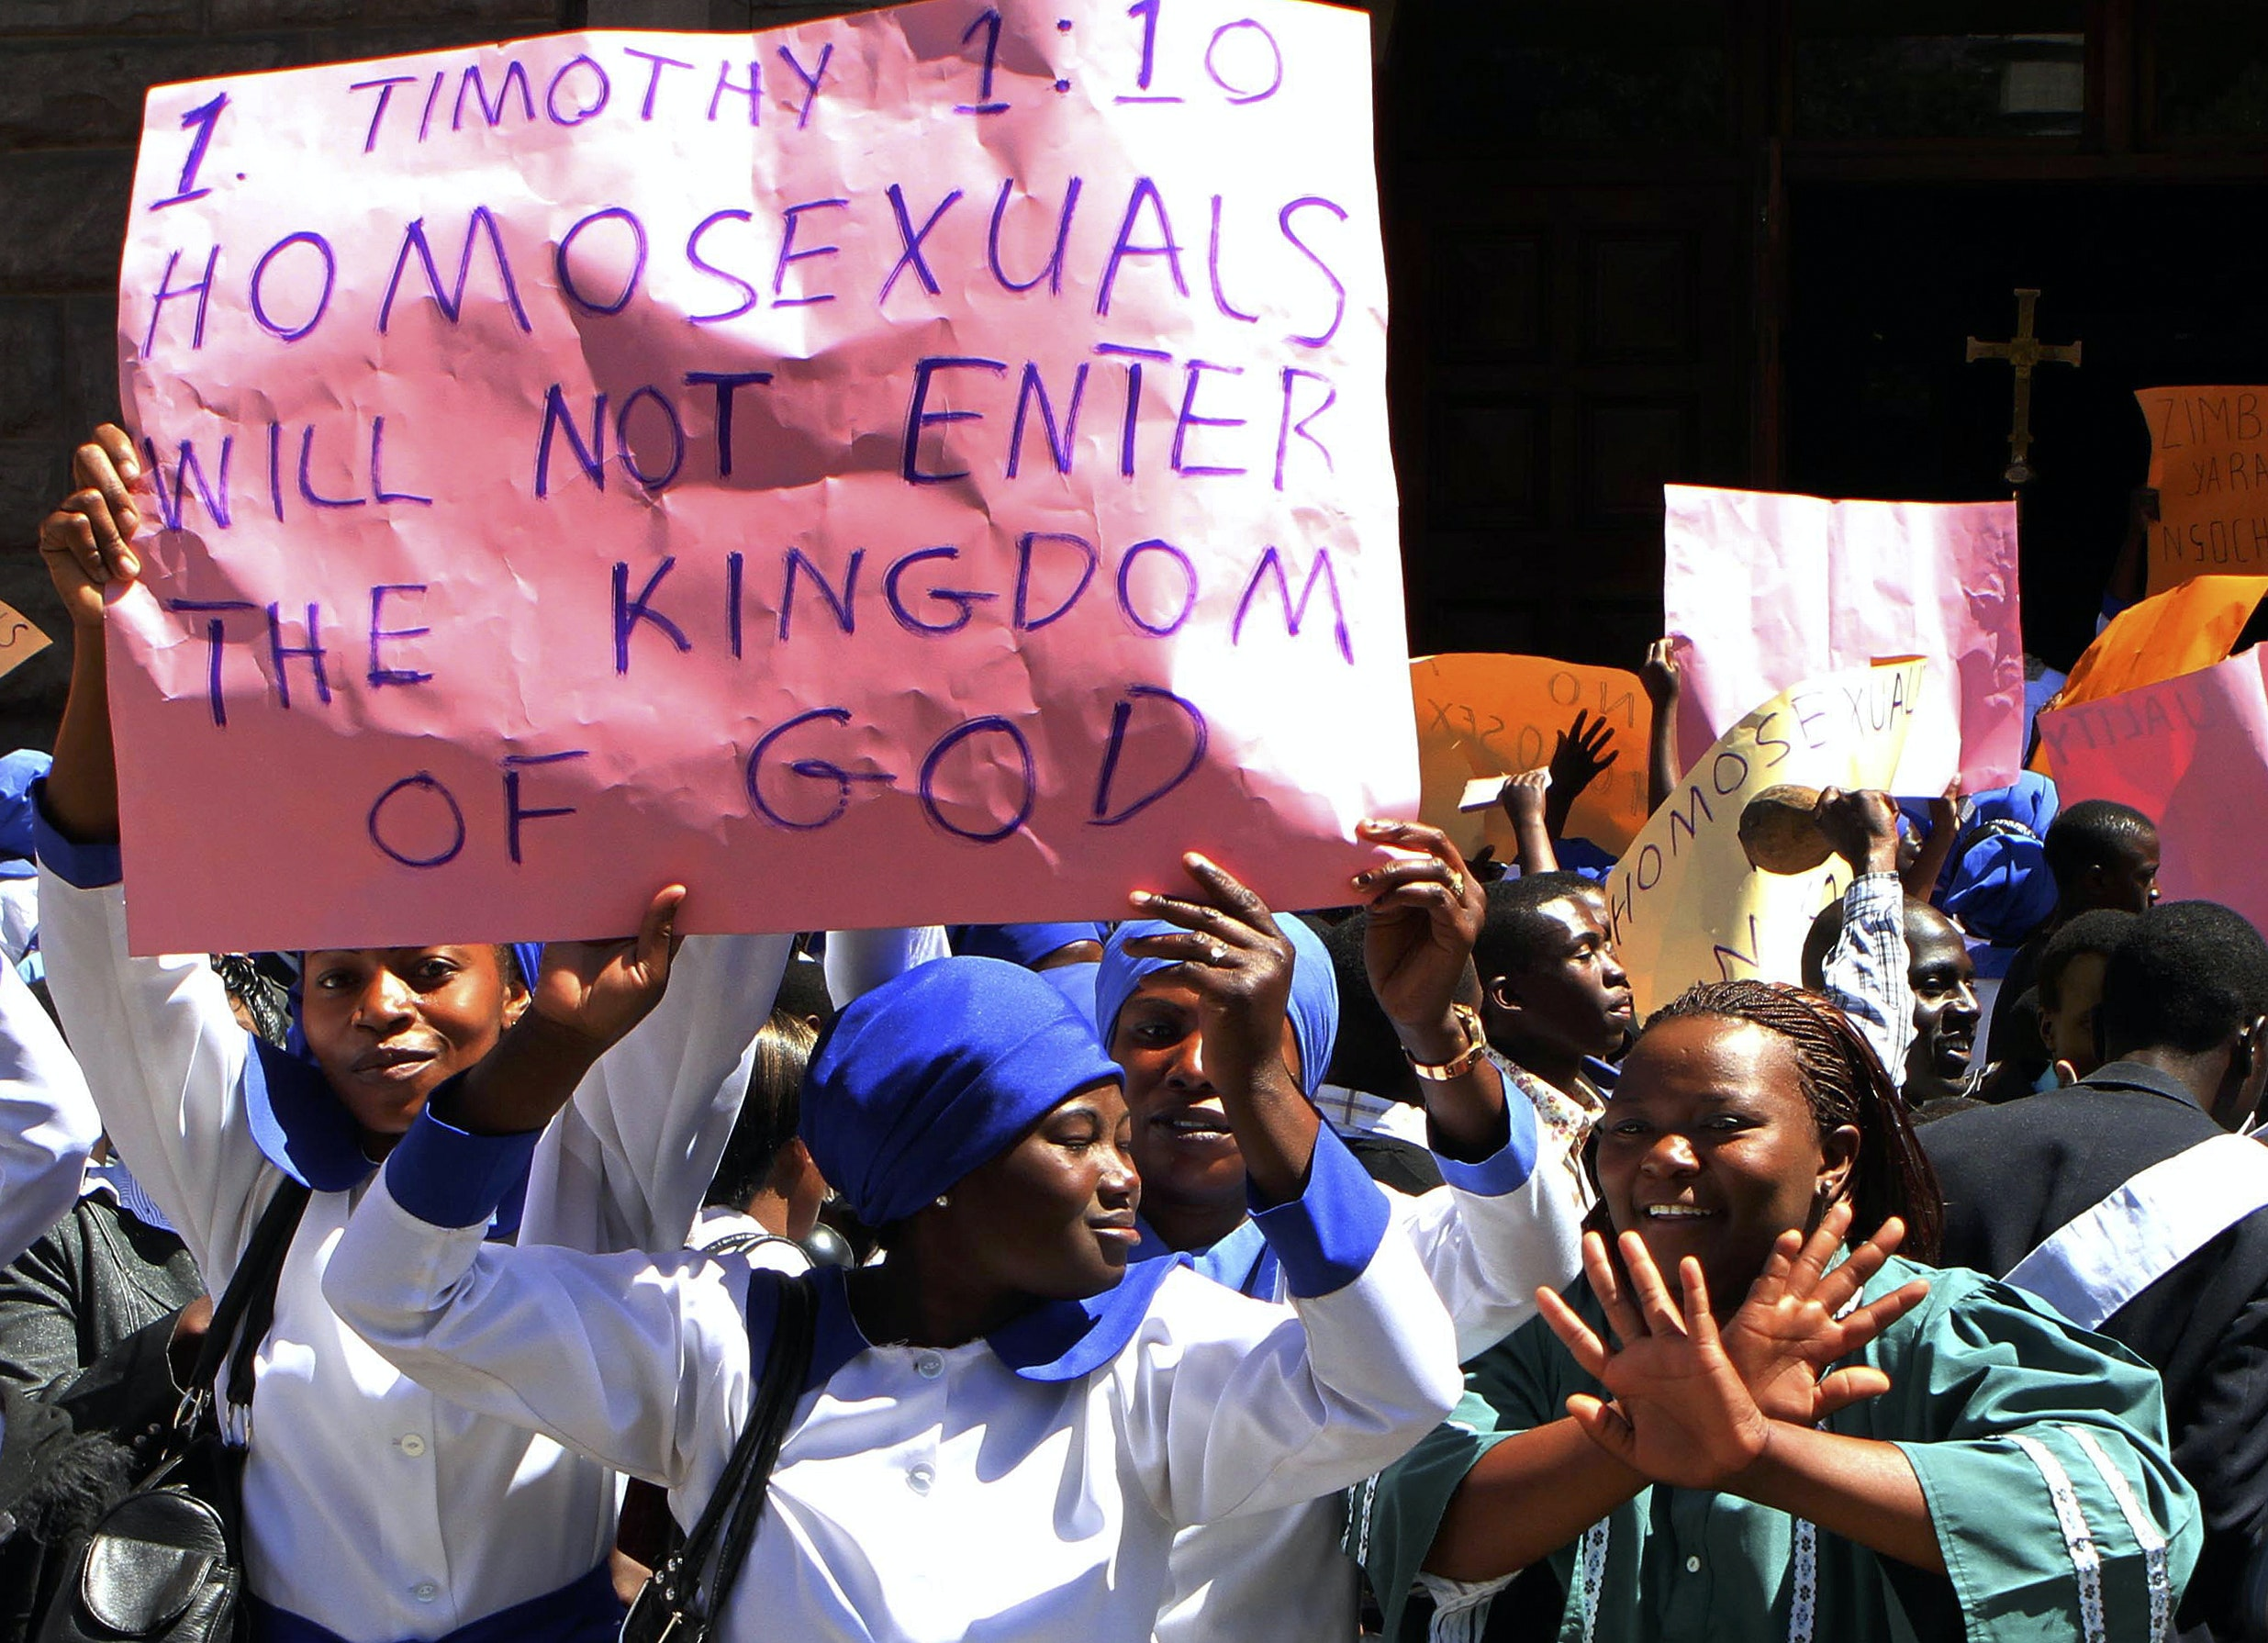 Criminalise homosexuality in christianity